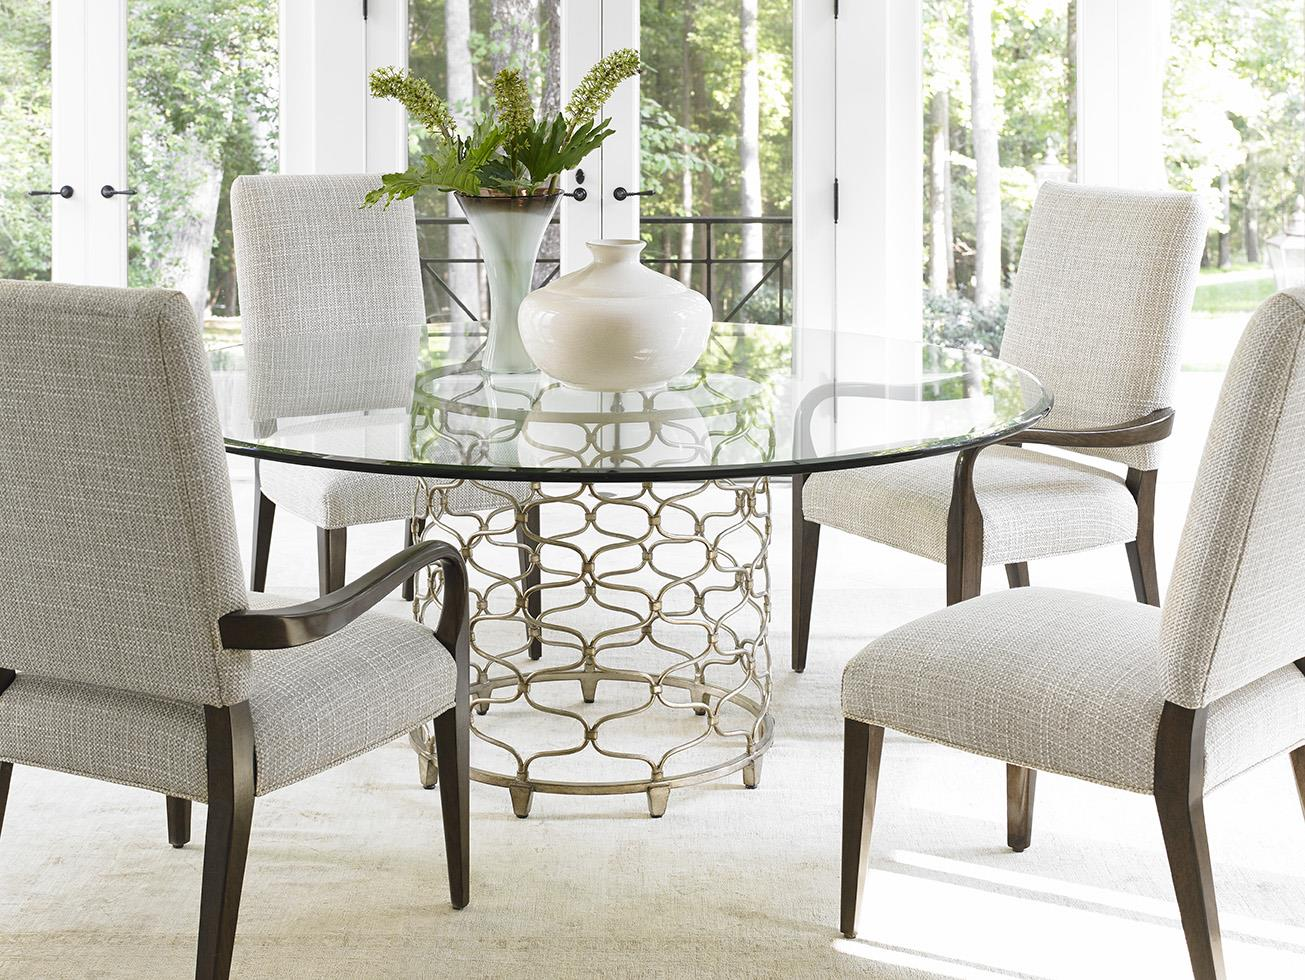 Tufted Chaise Lounge Chair, Lexington Laurel Canyon Five Piece Dining Set With Bollinger Table And Married Fabric Chairs Esprit Decor Home Furnishings Dining 5 Piece Sets